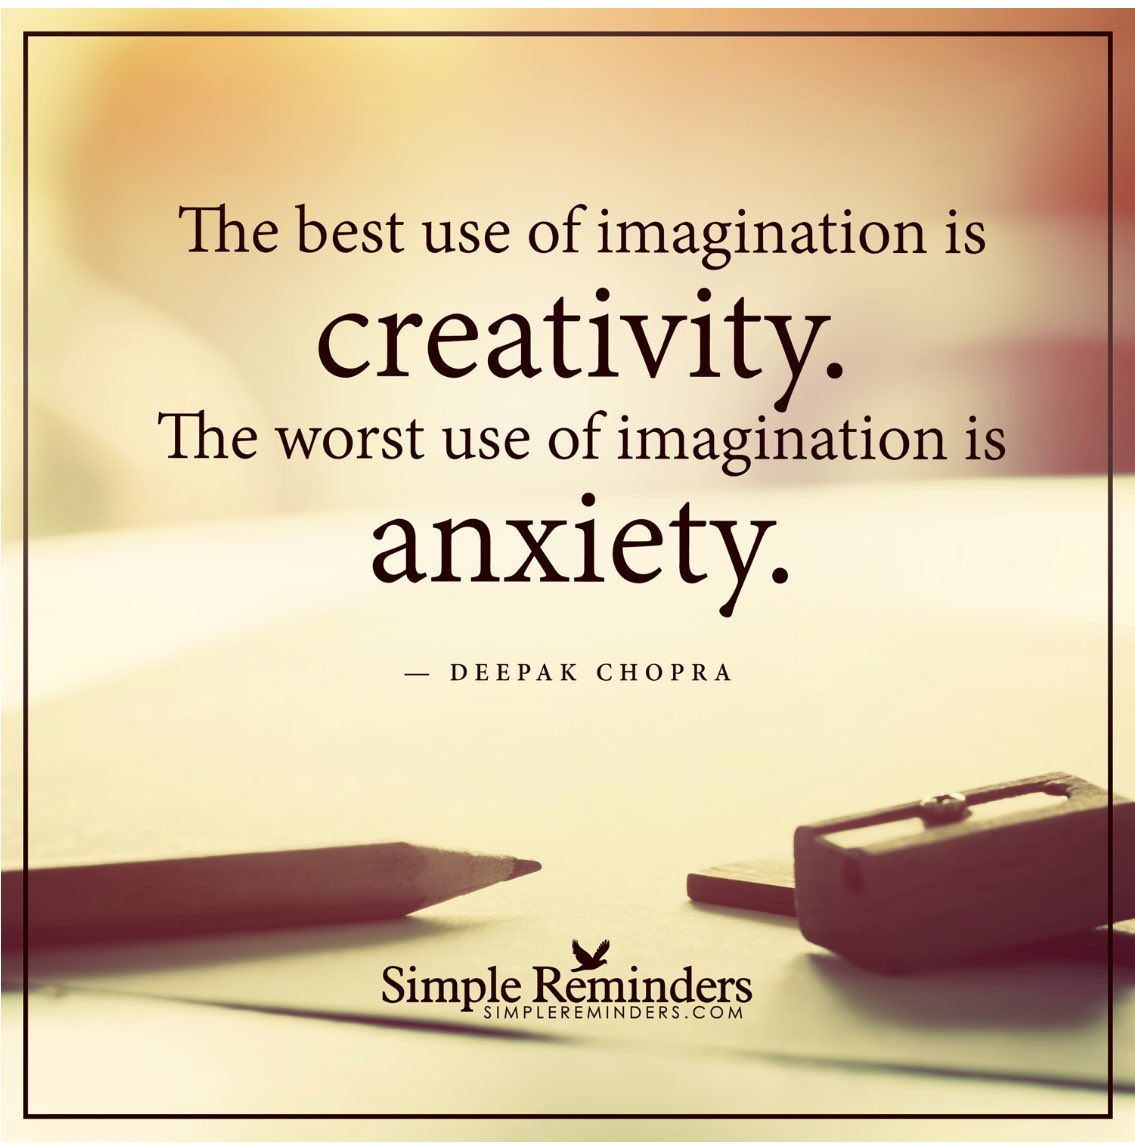 The best use of imagination is creativity #deepakchopra @DeepakChopra #create #music #imagination #peace #love<br>http://pic.twitter.com/ub9xi3xxJ3